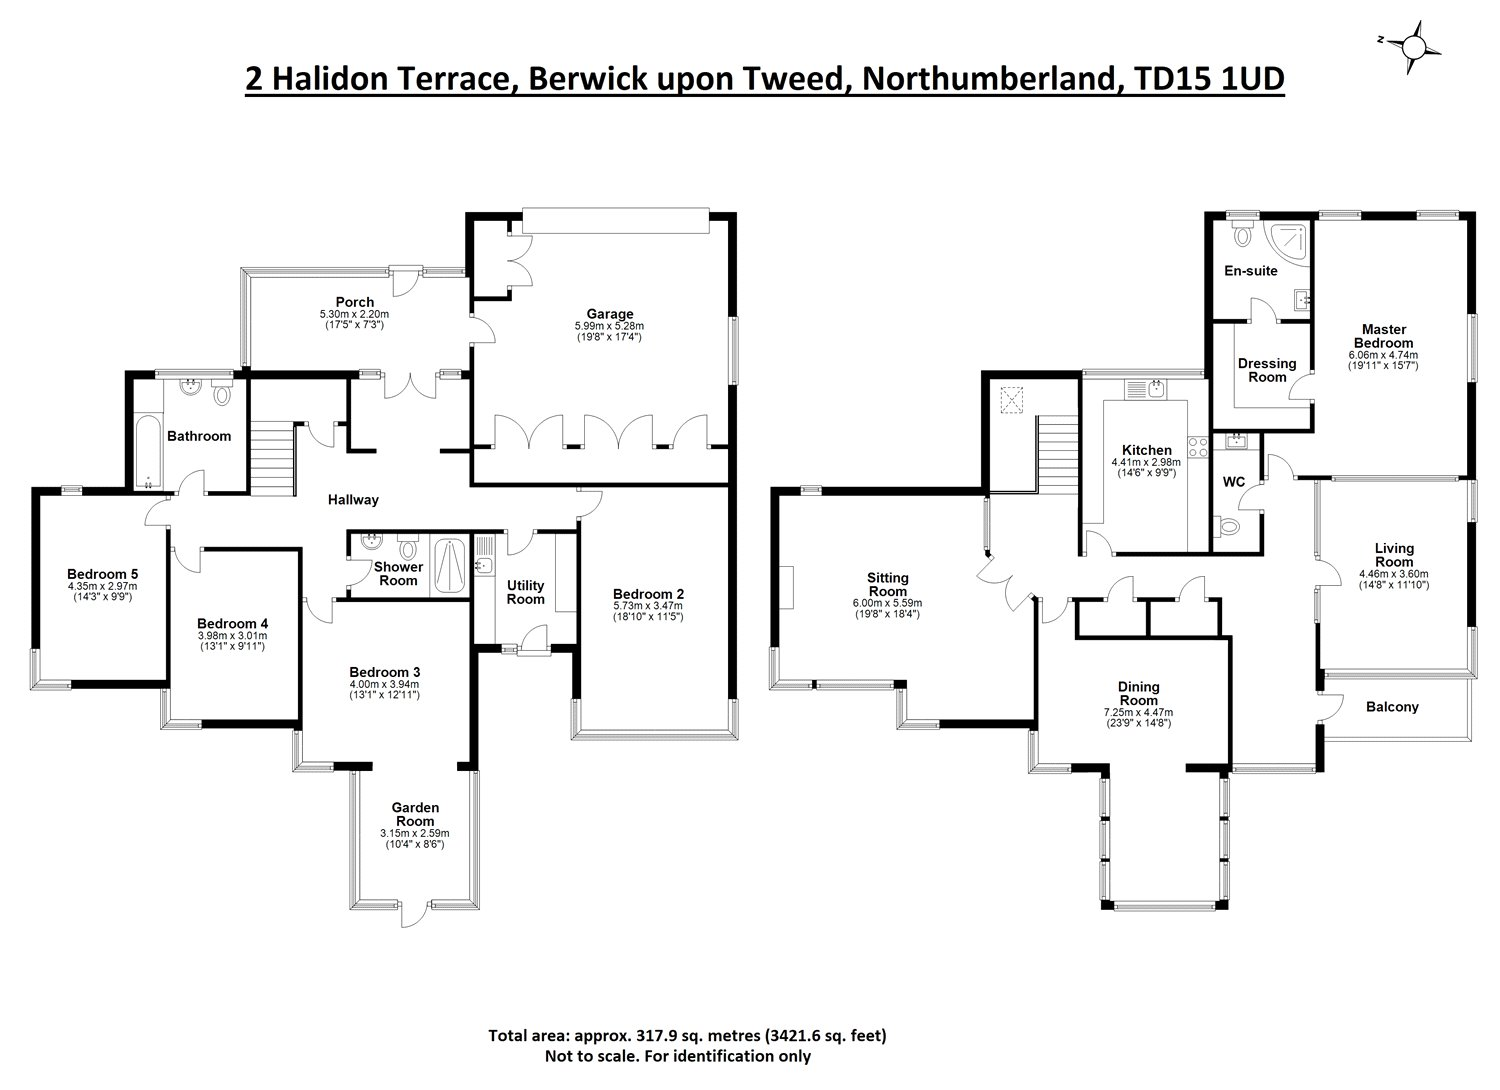 Floorplans for Halidon Terrace, Berwick-upon-Tweed, Northumberland, TD15